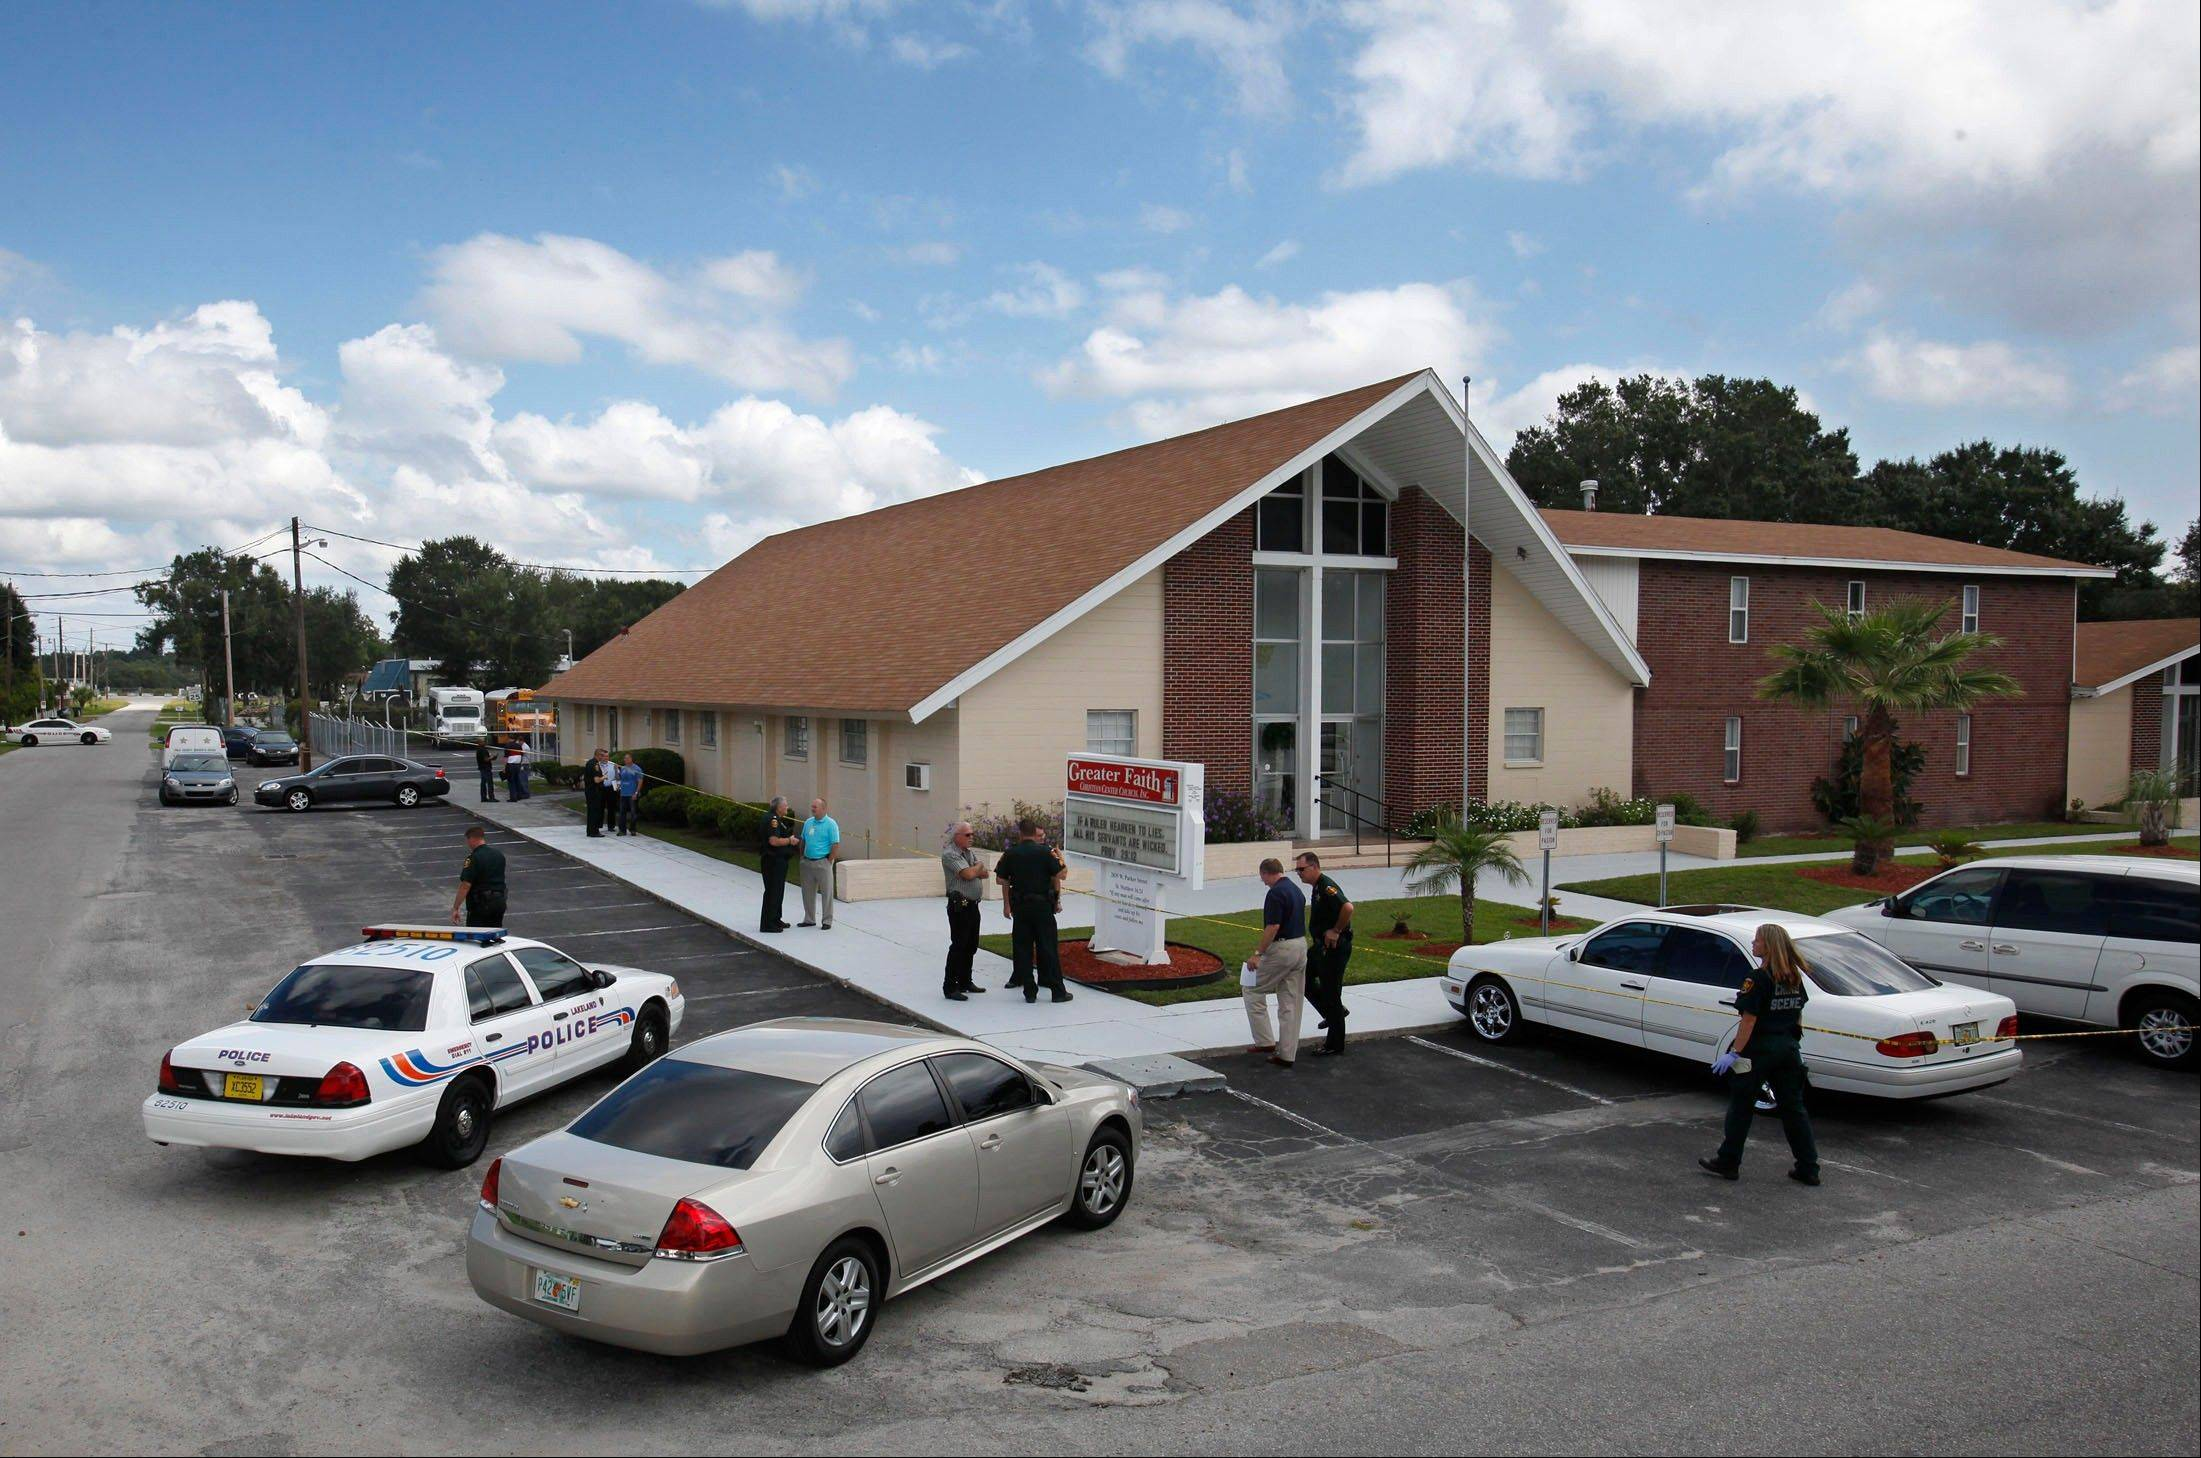 A gunman killed his wife at their Lakeland, Fla., home and then burst through the front door of a nearby church on Sunday, wounding a pastor and associate pastor before parishioners tackled him, authorities and relatives said.